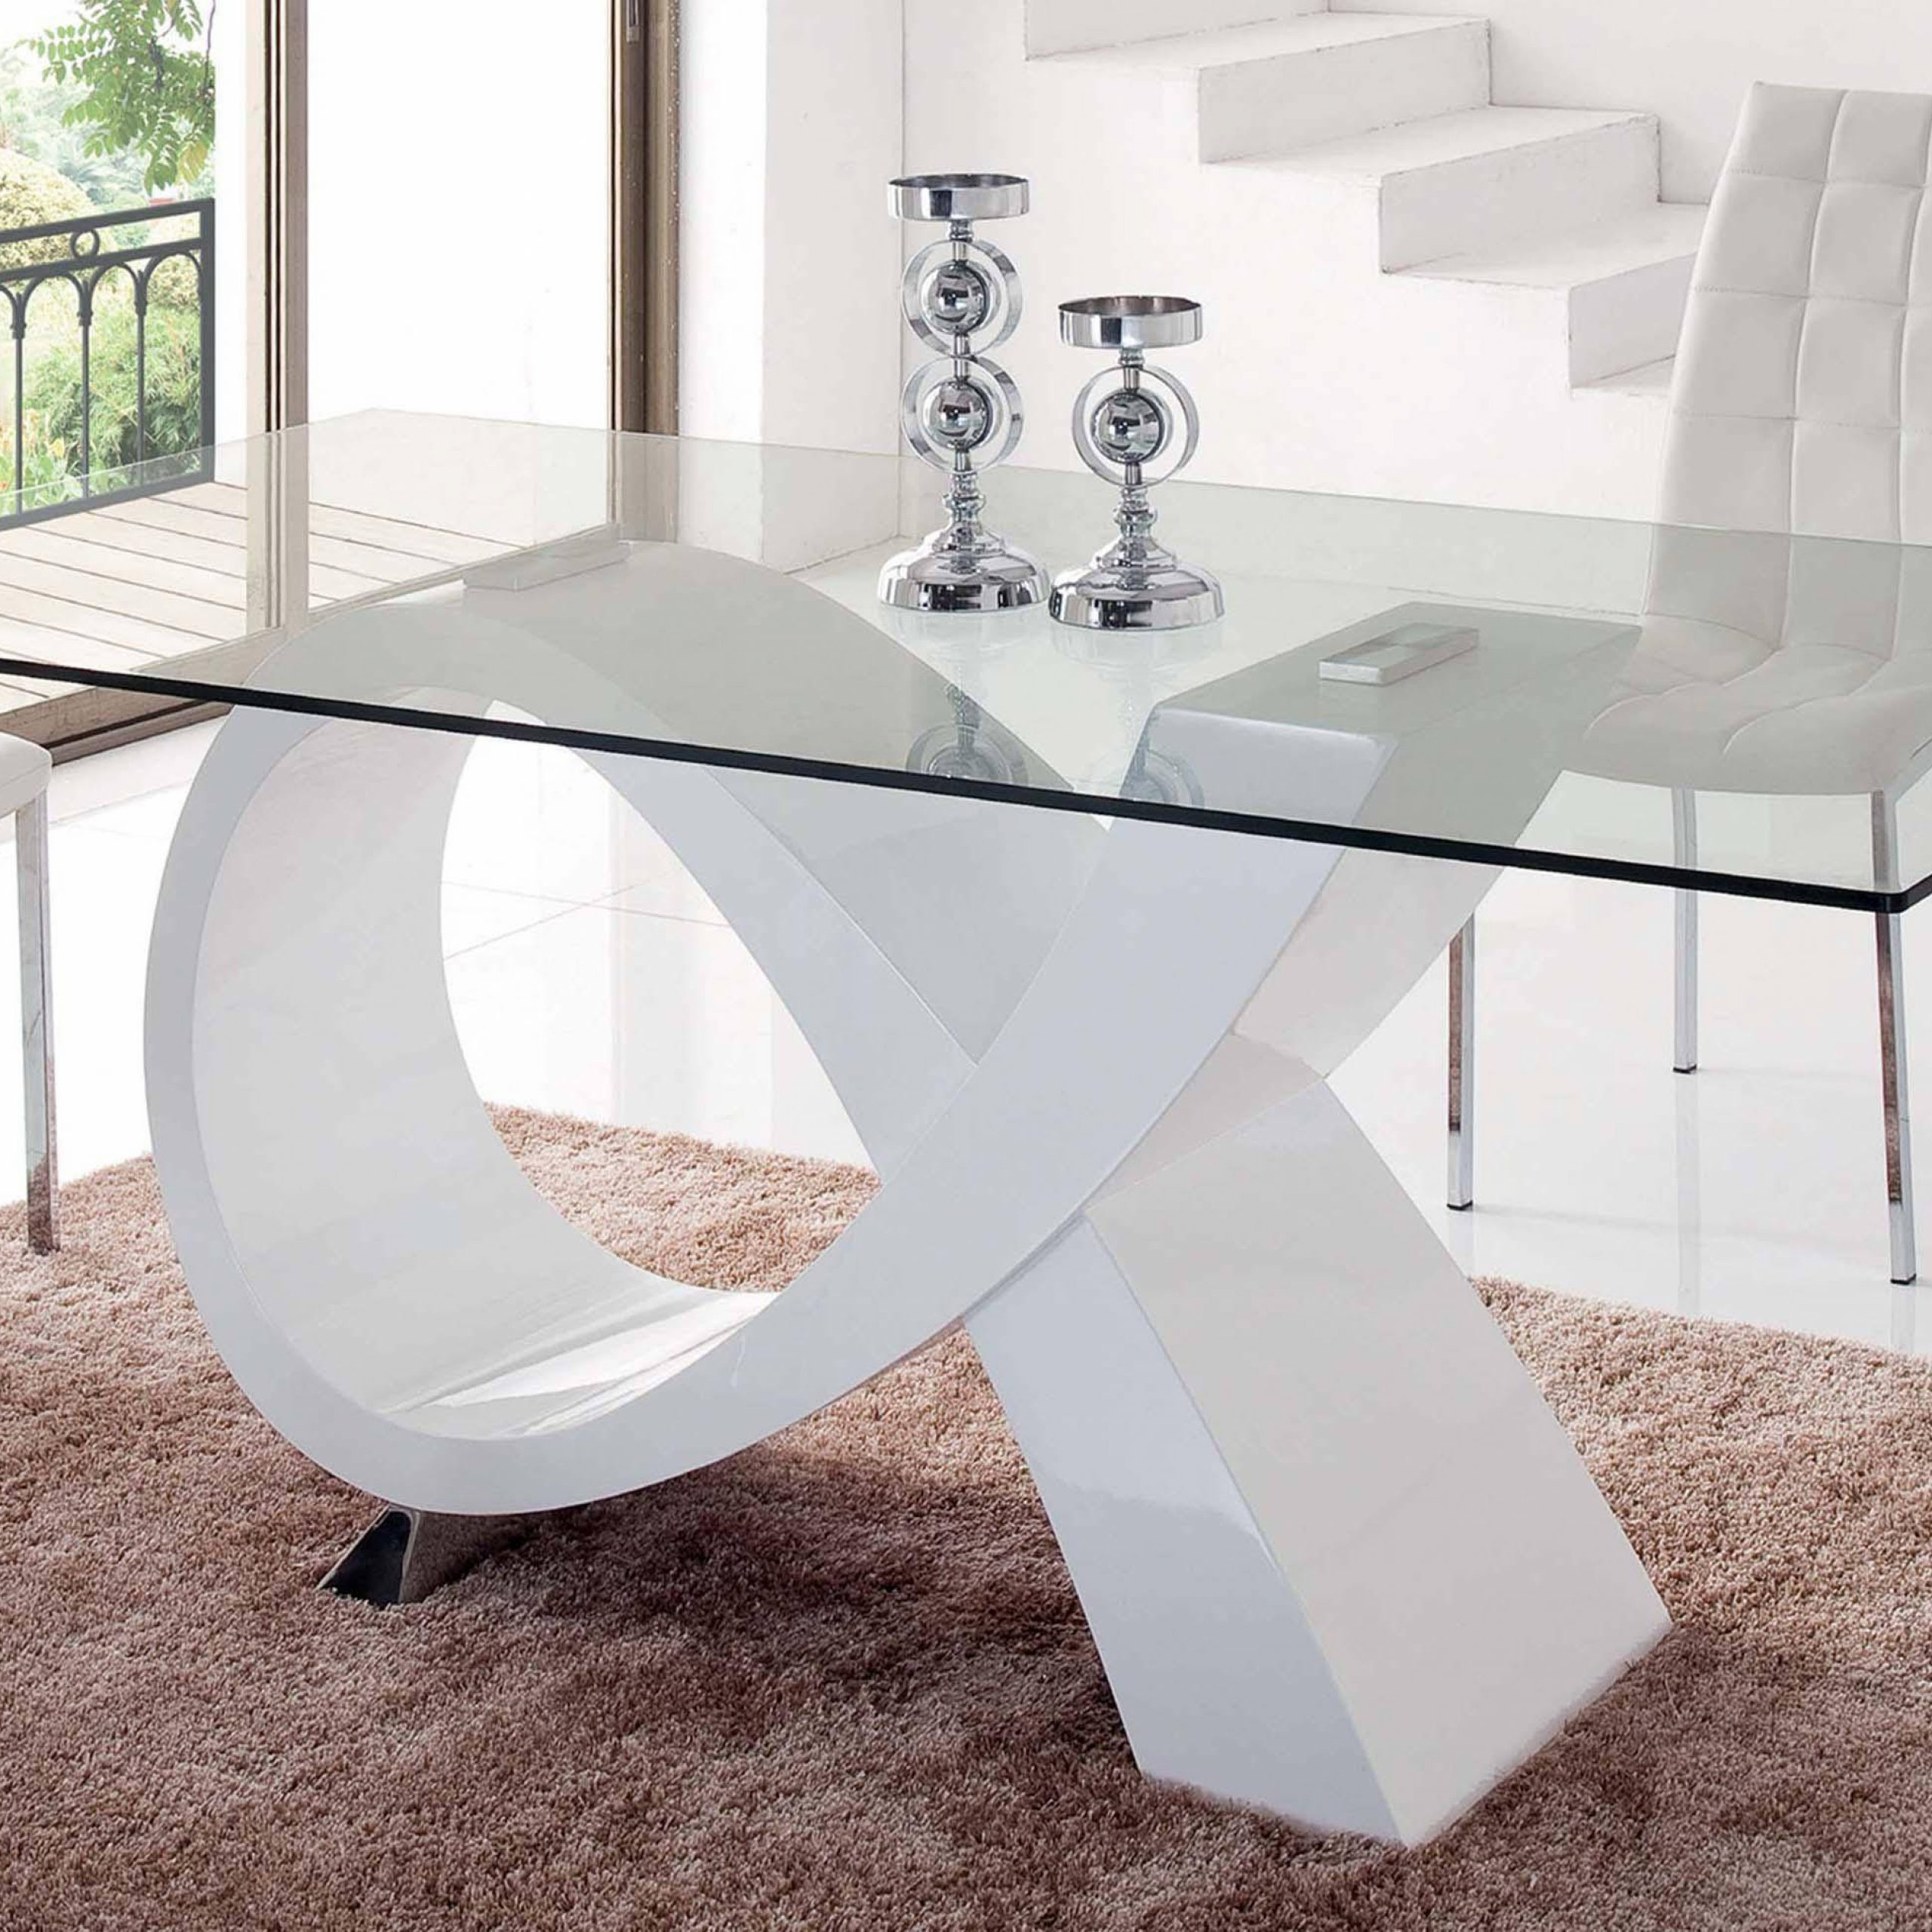 Modern Rectangular Glass Top High Gloss Finish White Dining With Regard To Preferred Rectangular Glass Top Dining Tables (View 9 of 30)